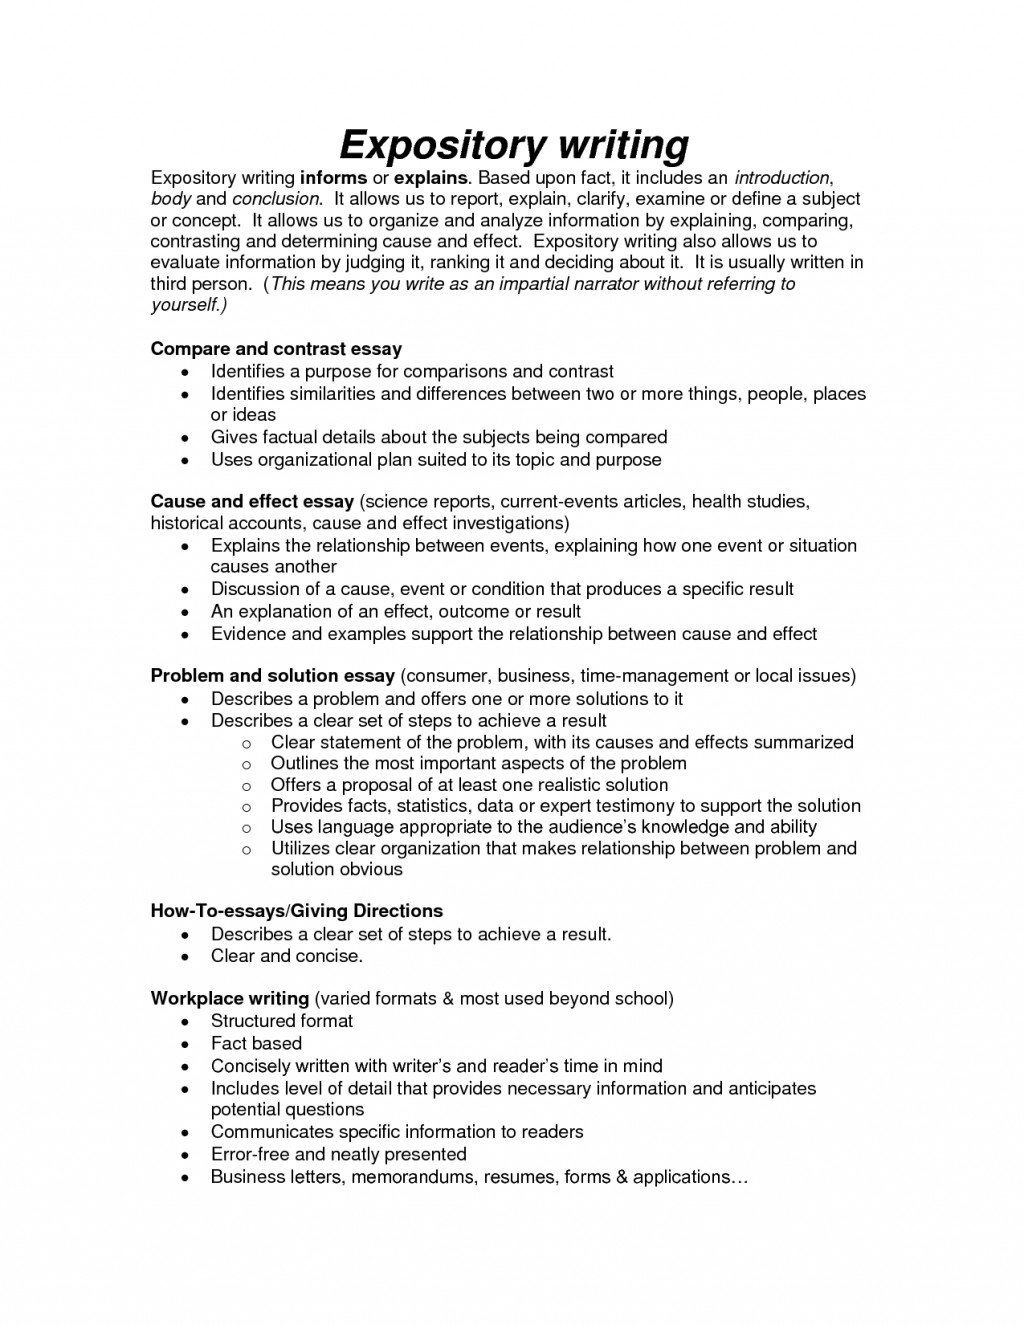 004 How To Write An Informational Essay Example Bizdoskacom Page Short Expository Examples Of L Frightening Informative 6th Grade 7th Thesis Large